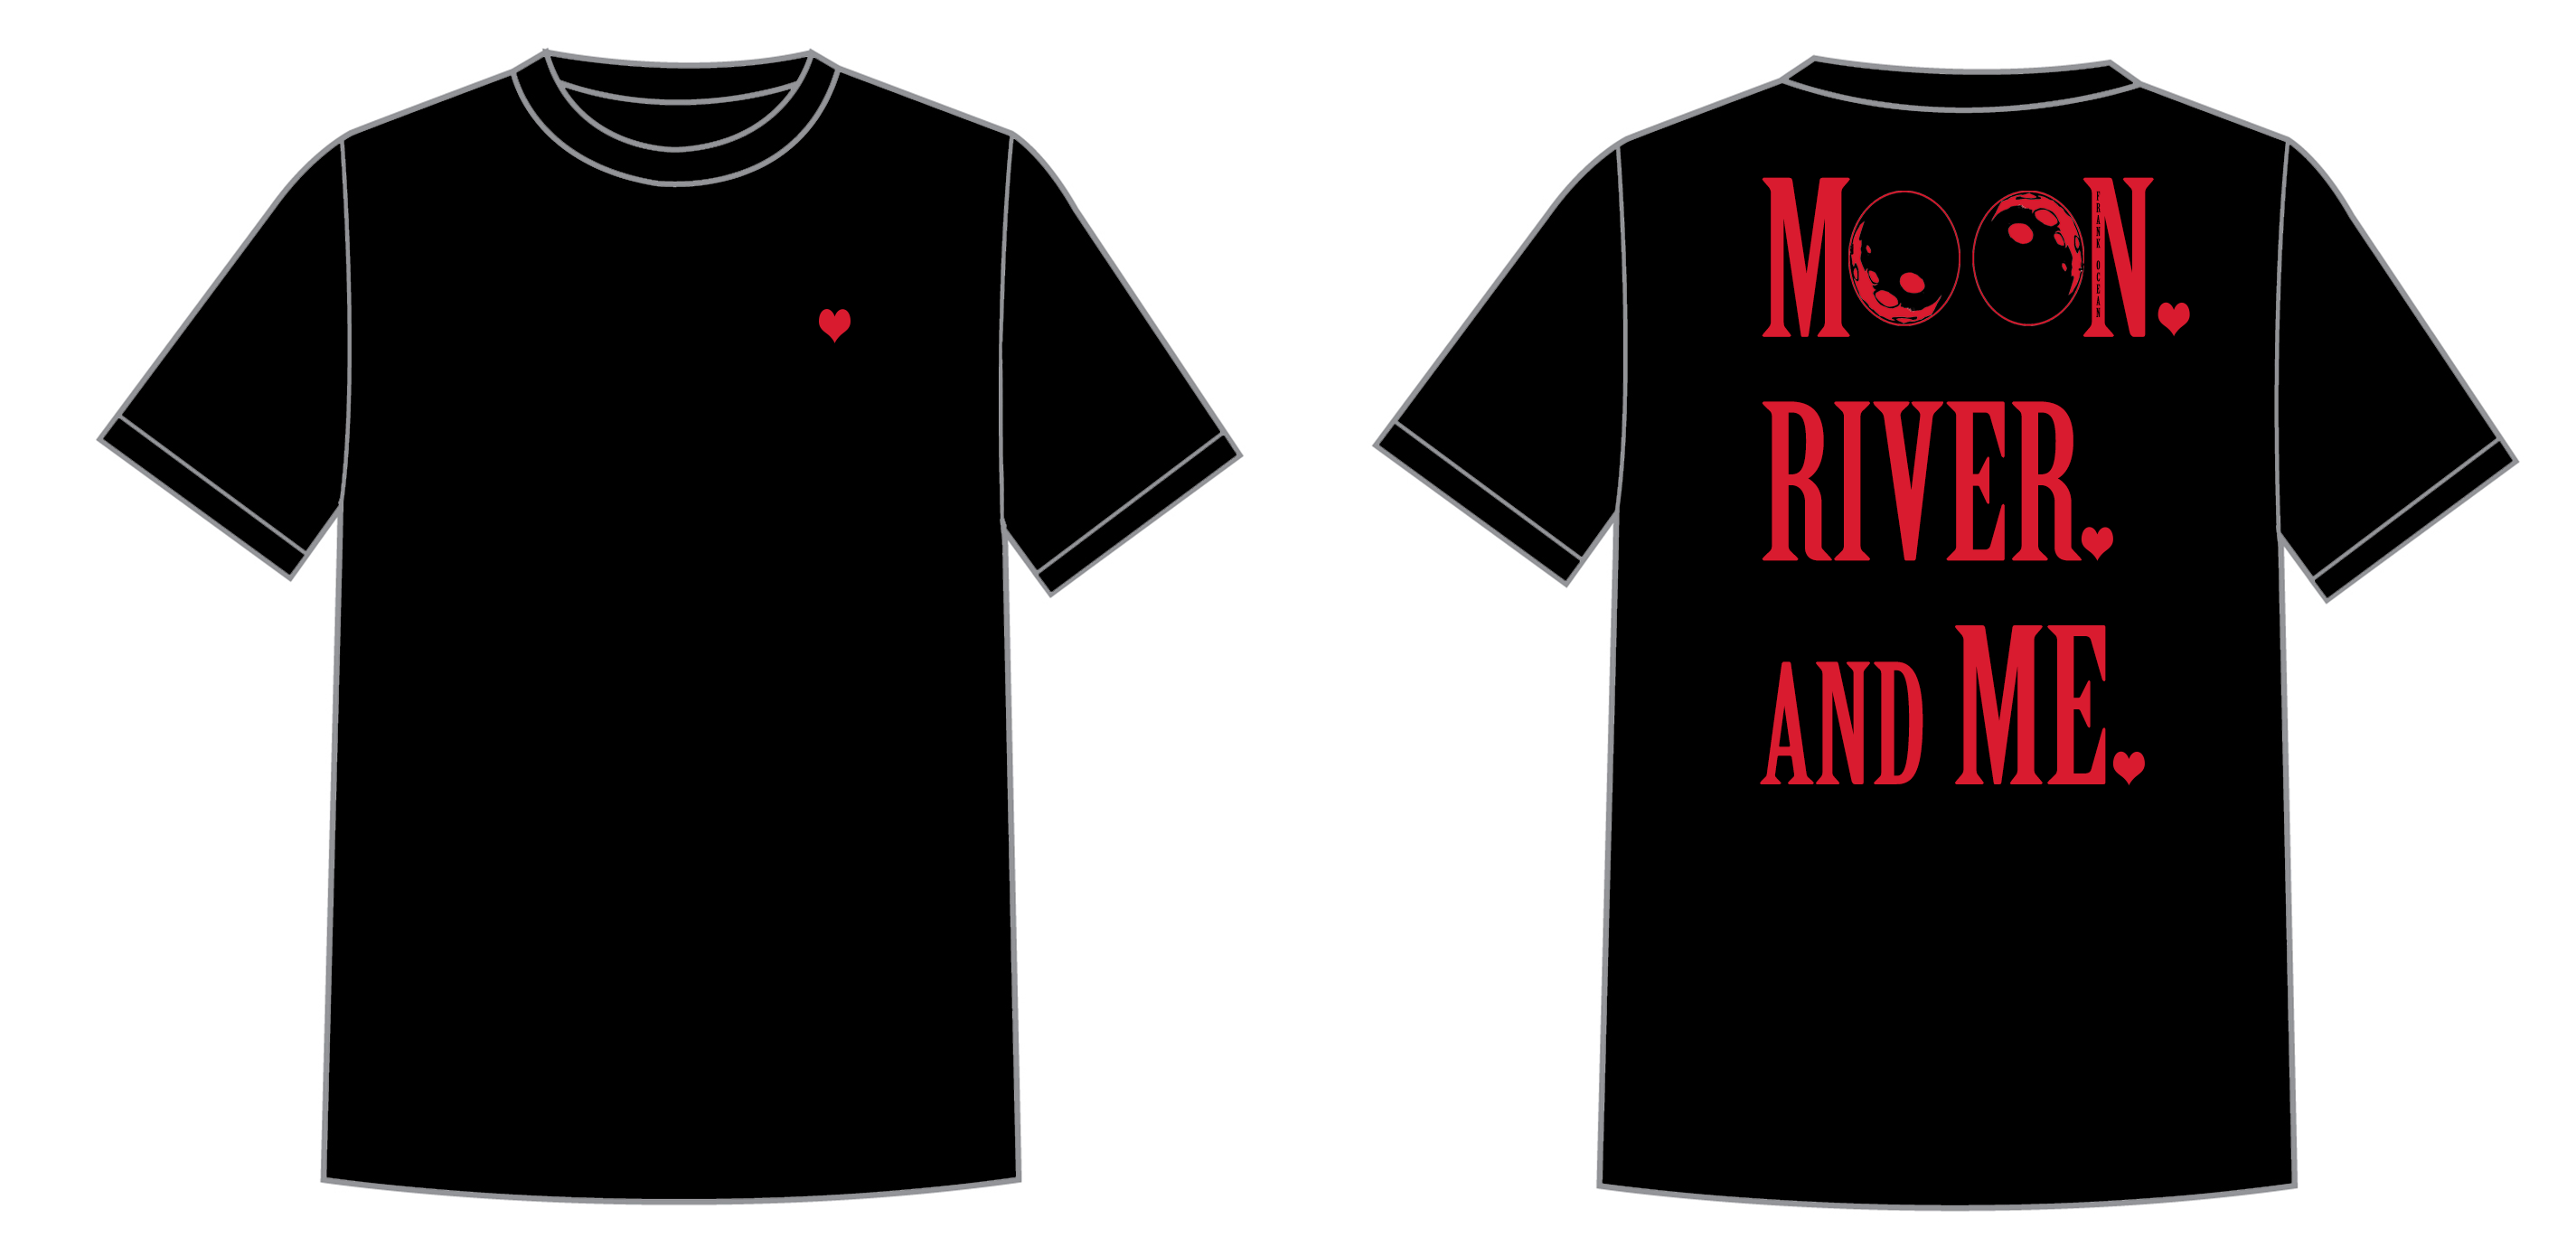 moonrivershirt